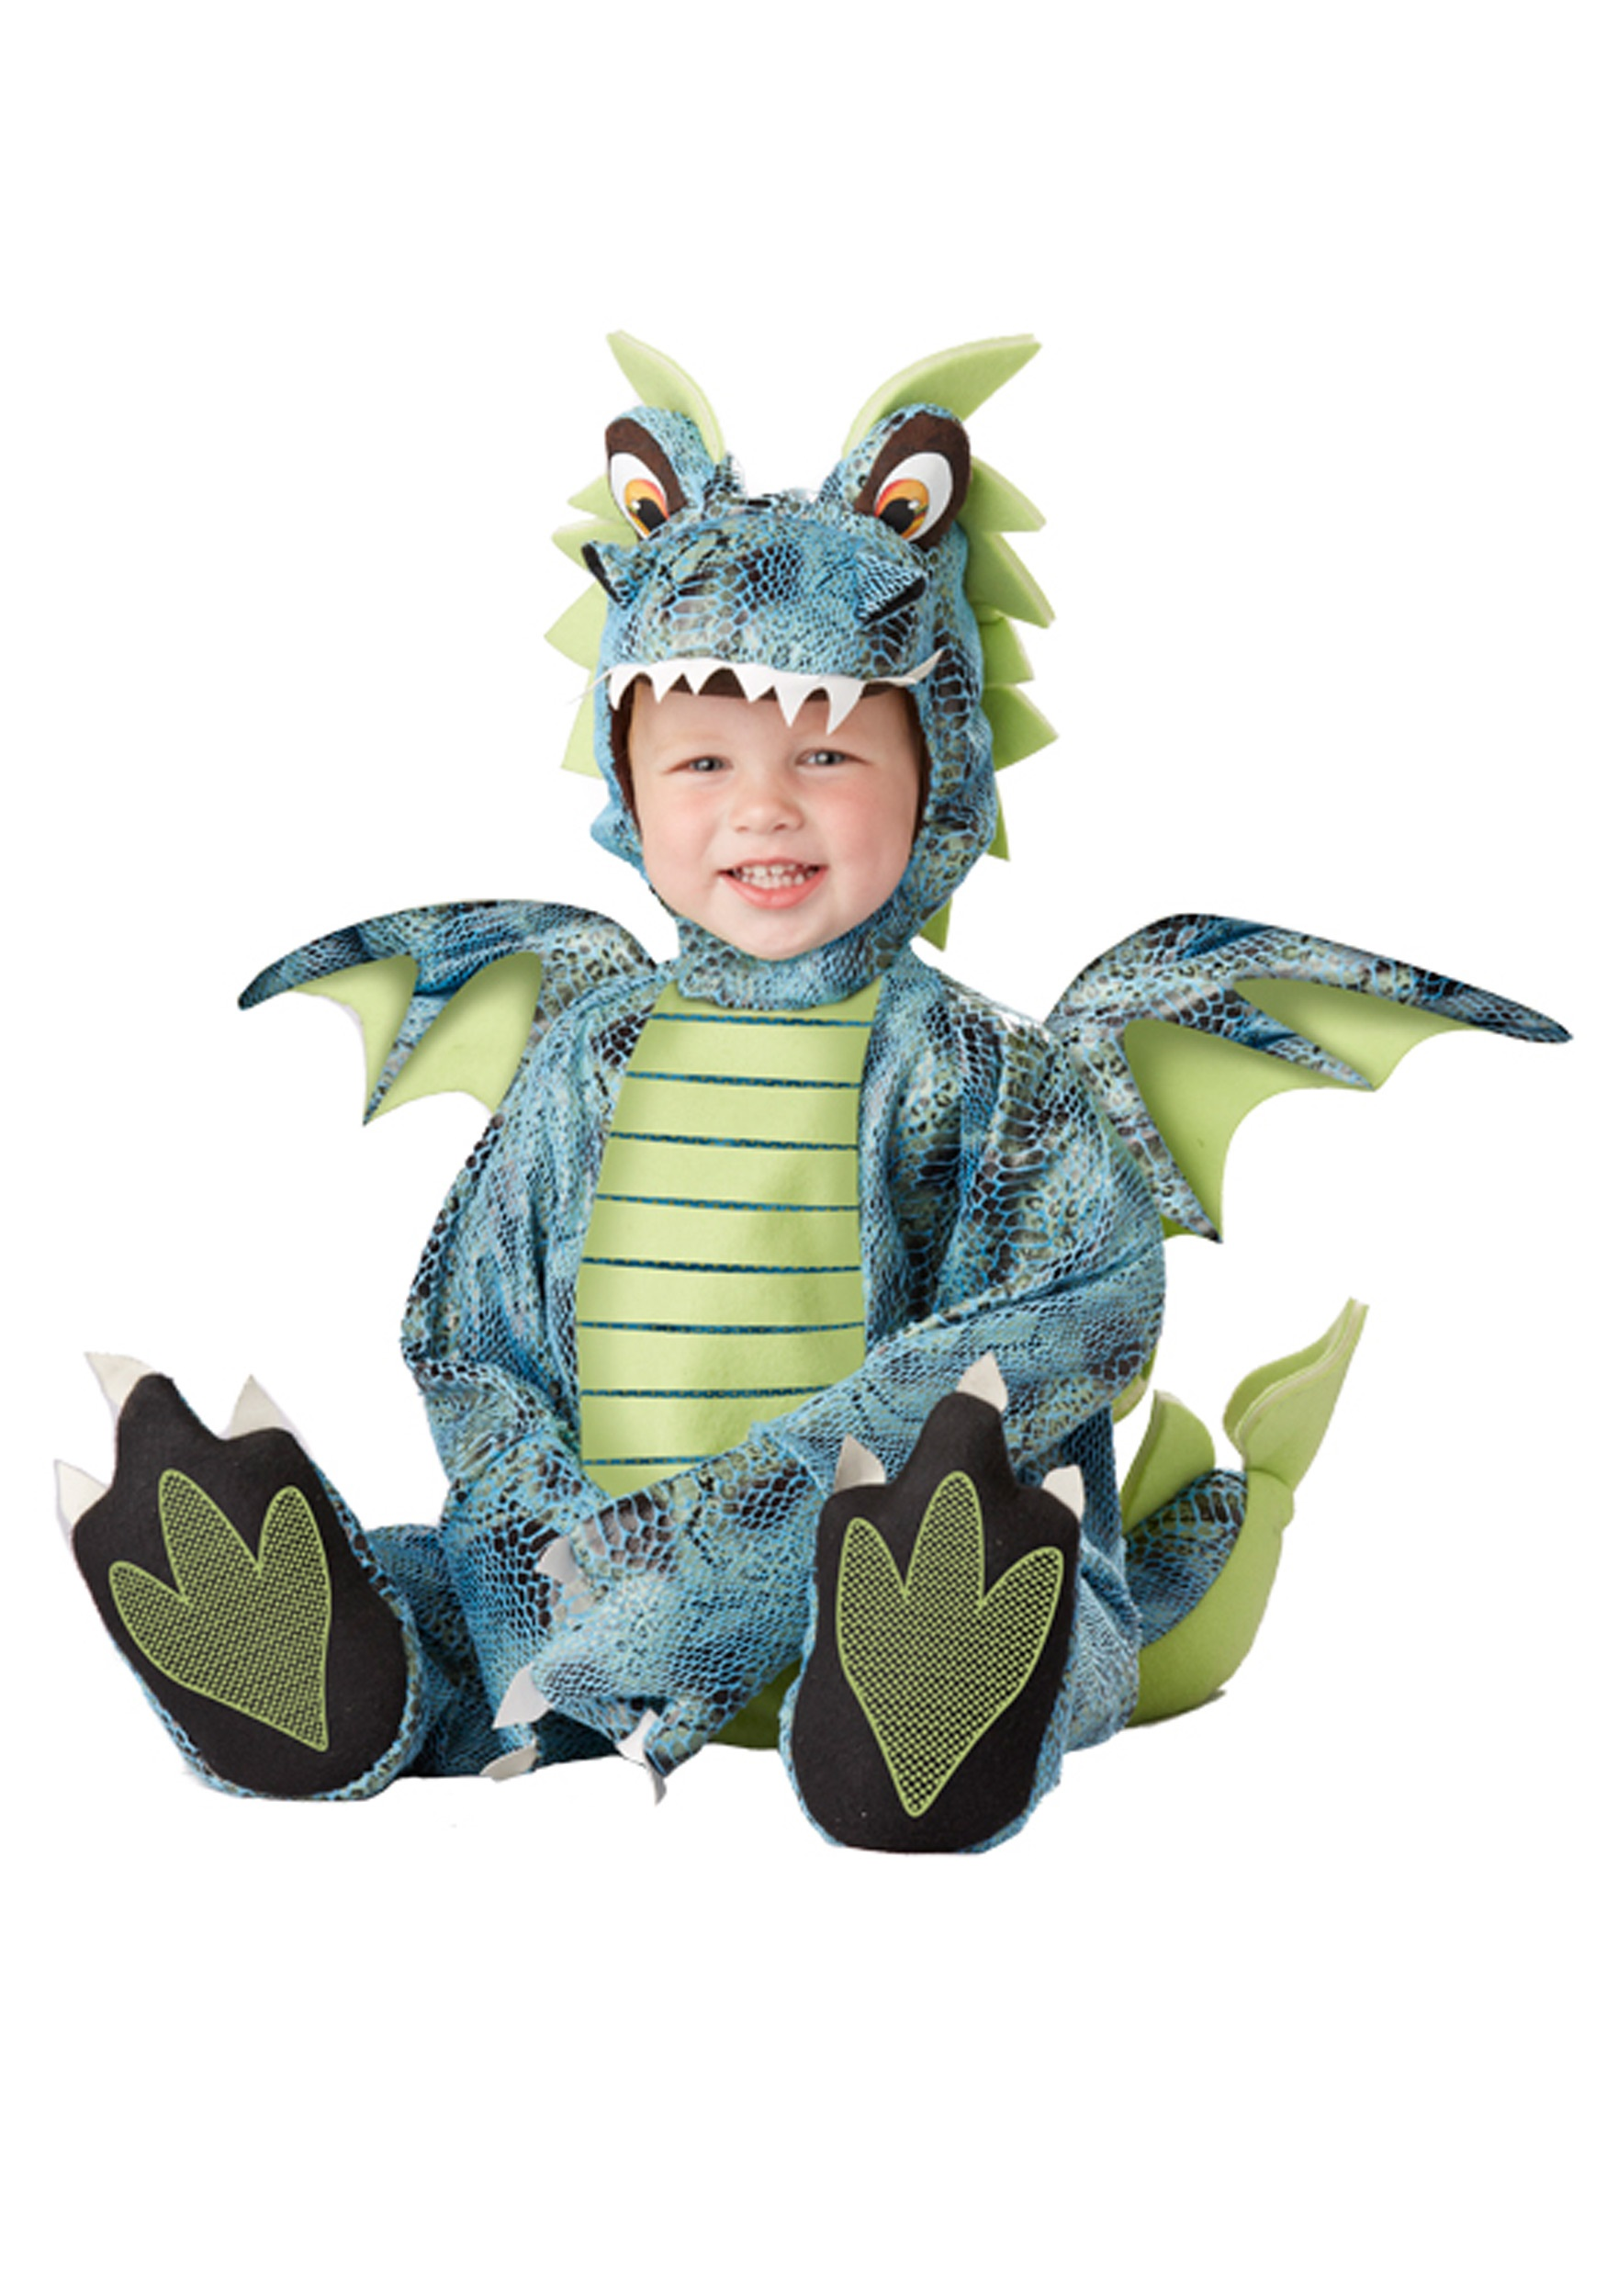 California Costumes Fire Breathing Dragon Toddler Costume 4-6